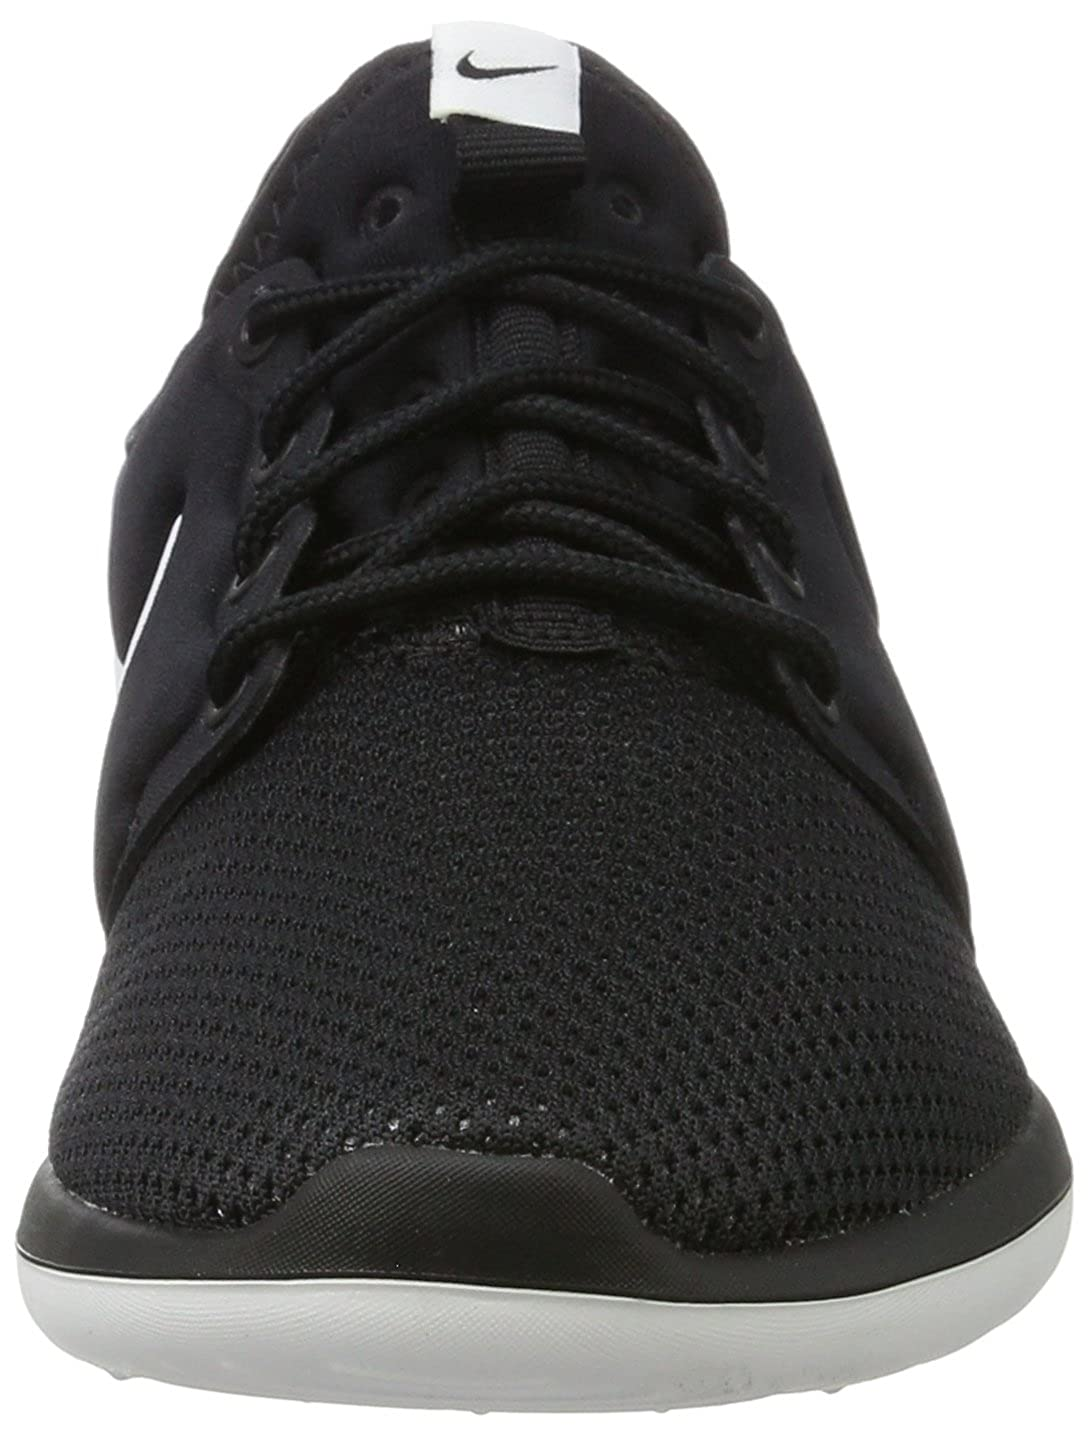 5d7842abc6041 Nike Unisex Kids  Roshe Two (Gs) Low-Top Sneakers  Amazon.co.uk  Shoes    Bags